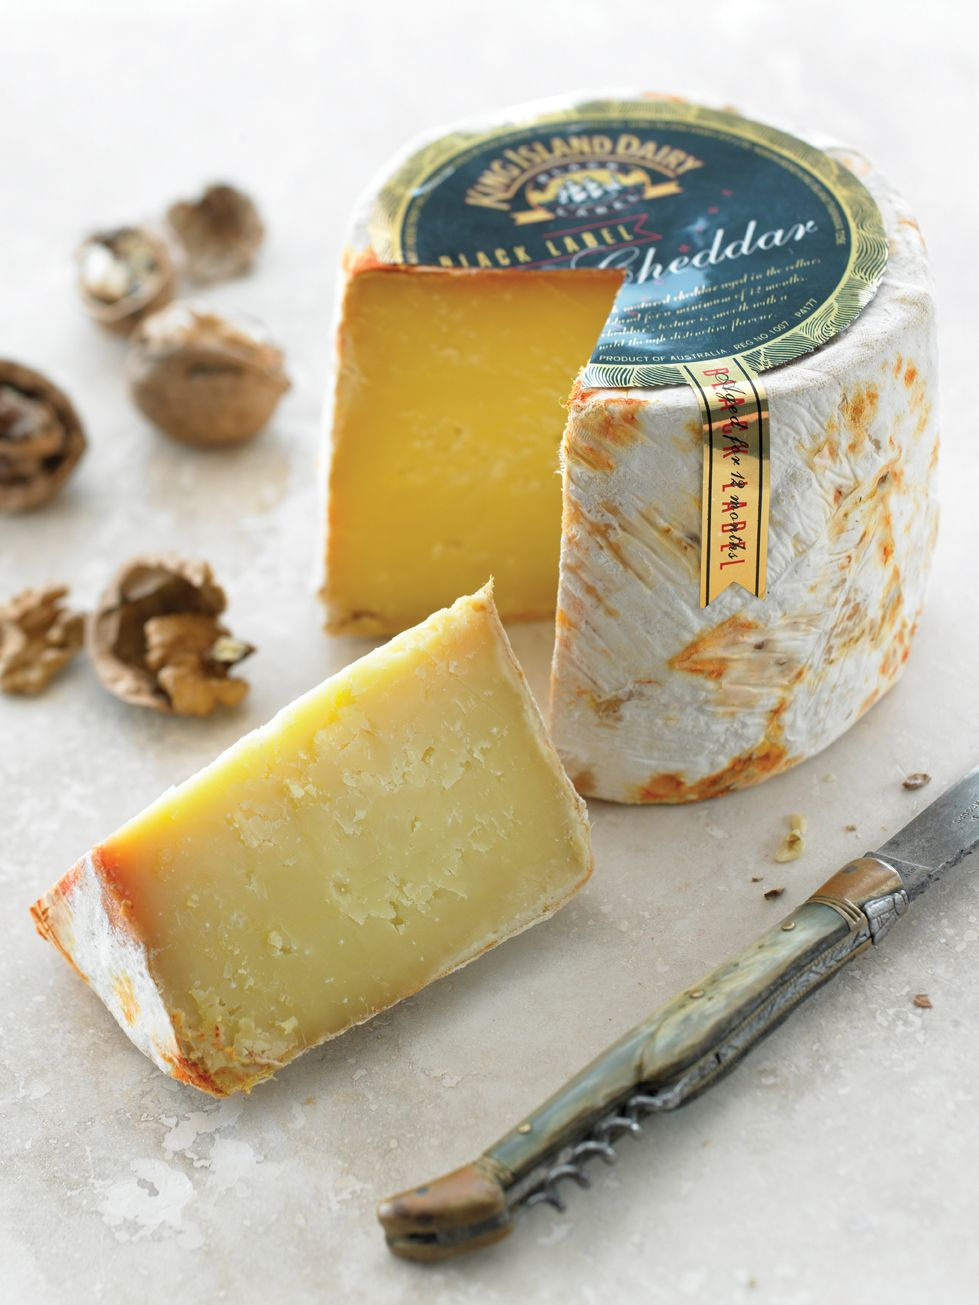 Win 1 of 5 King Island Dairy Award Winning Cheese Packs!